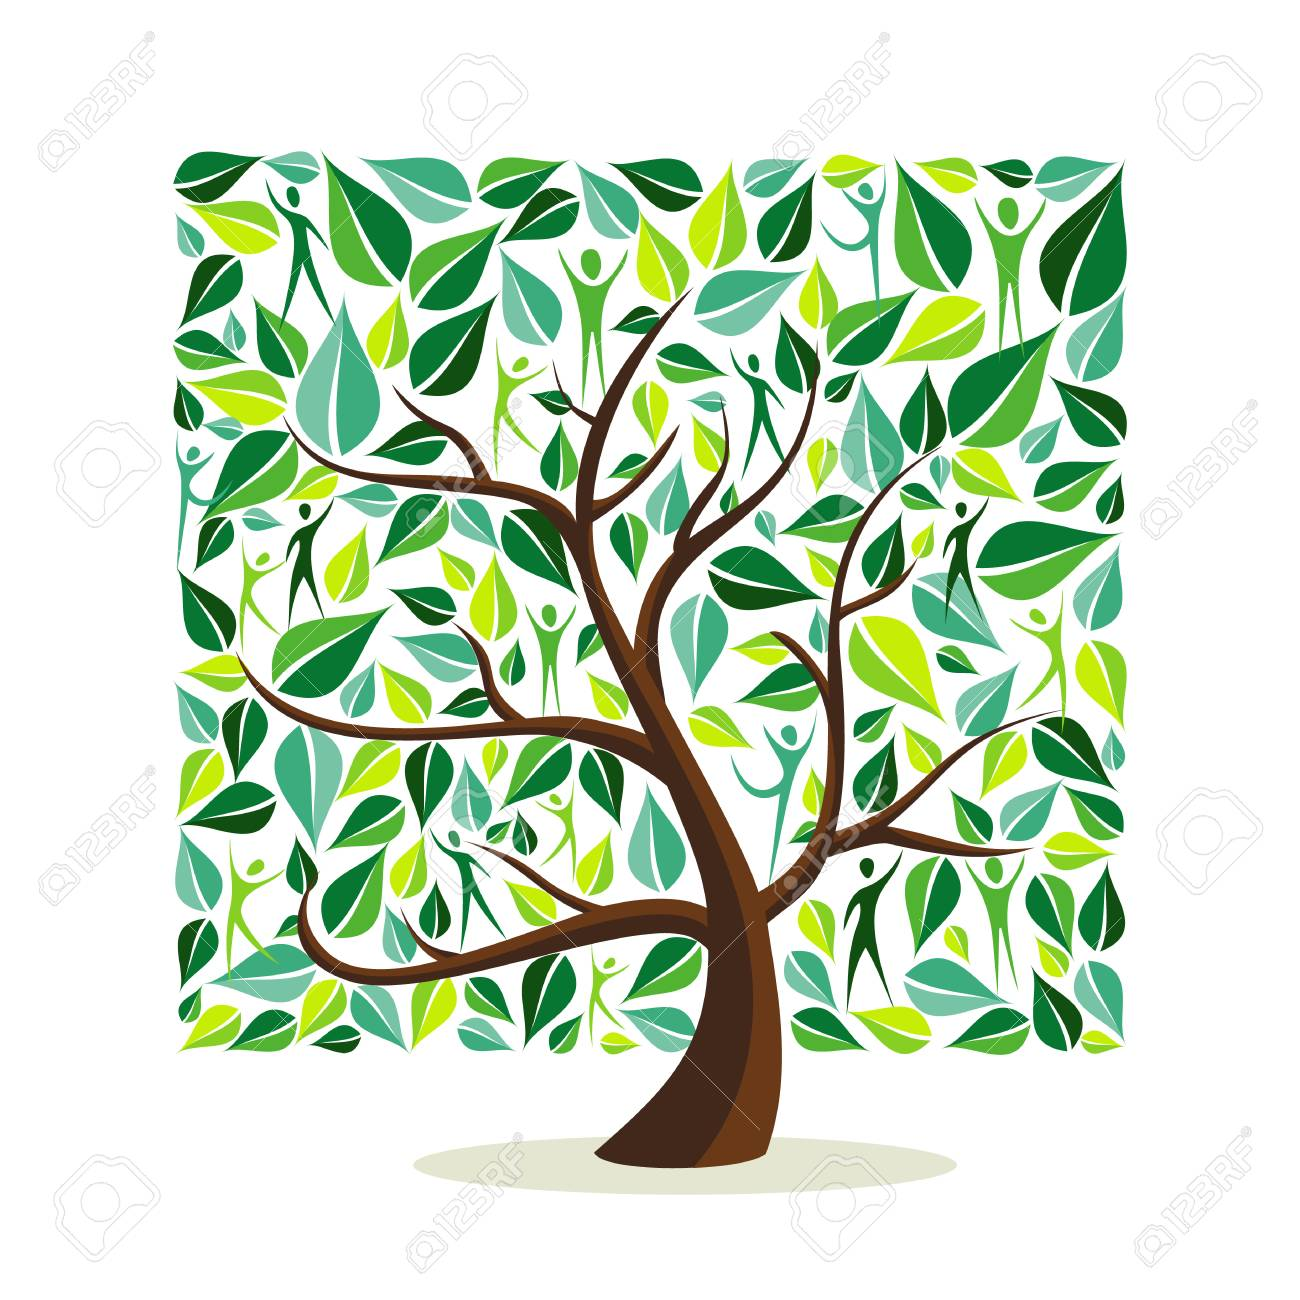 Tree made of green leaves with people in square shape. Nature concept, community help or care campaign. EPS10 vector. - 111919979